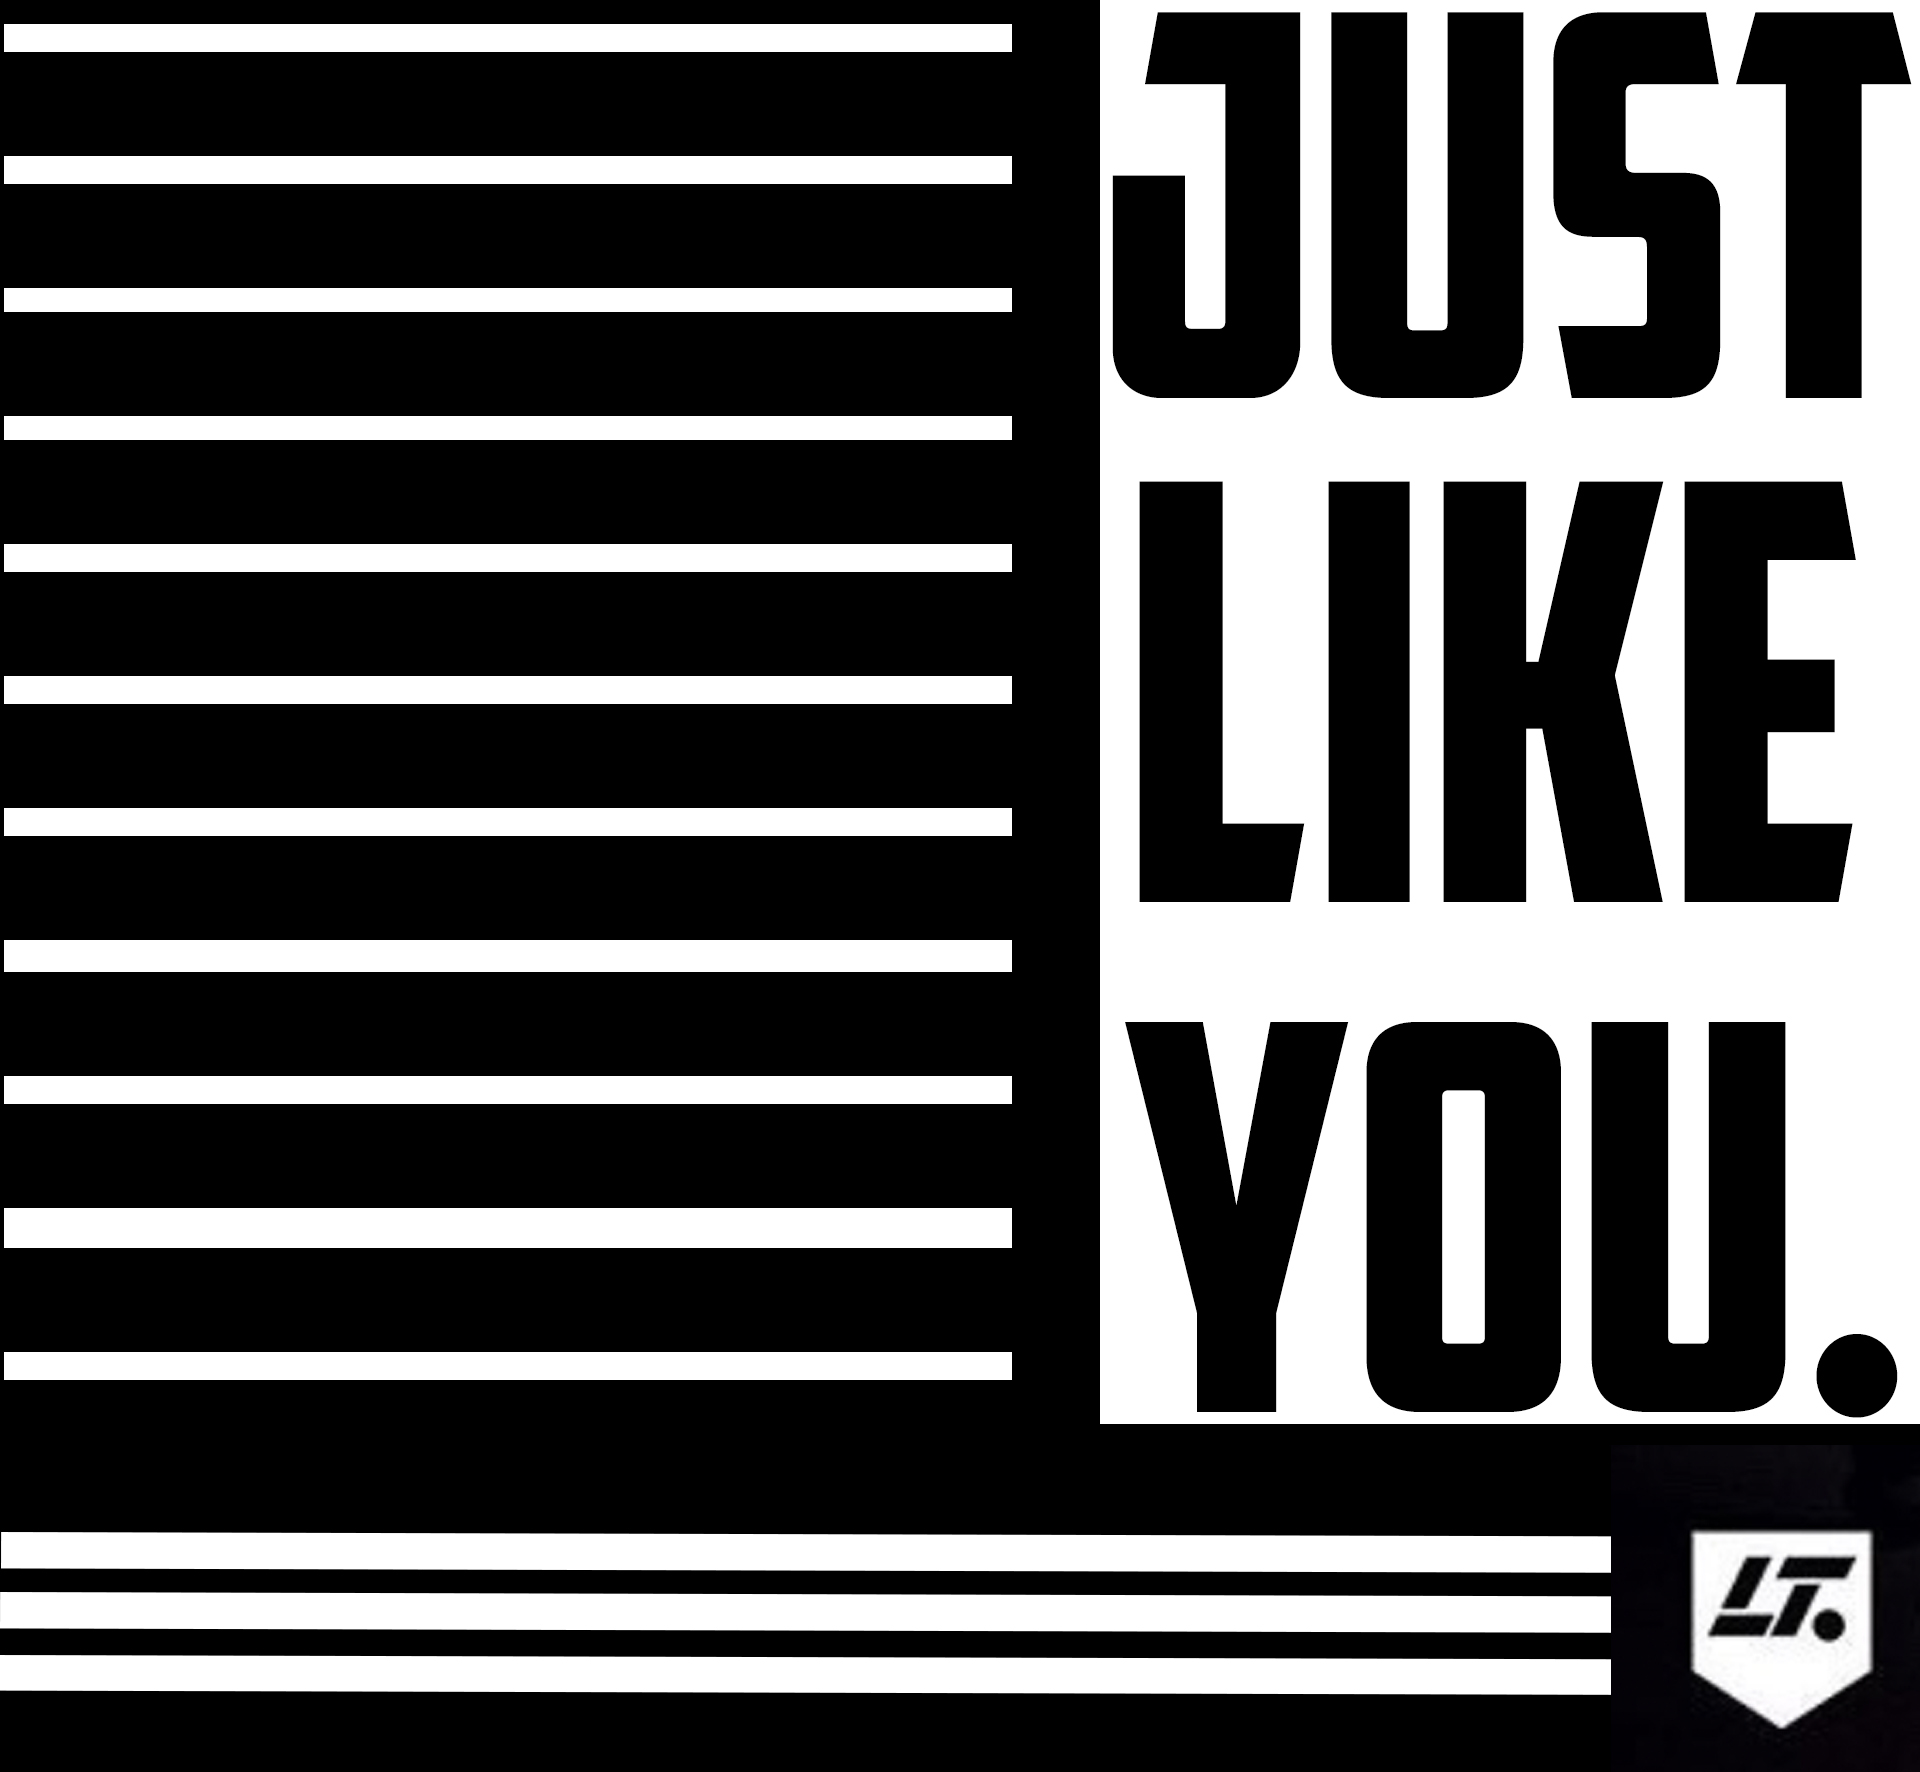 103. Just Like You | Francesca